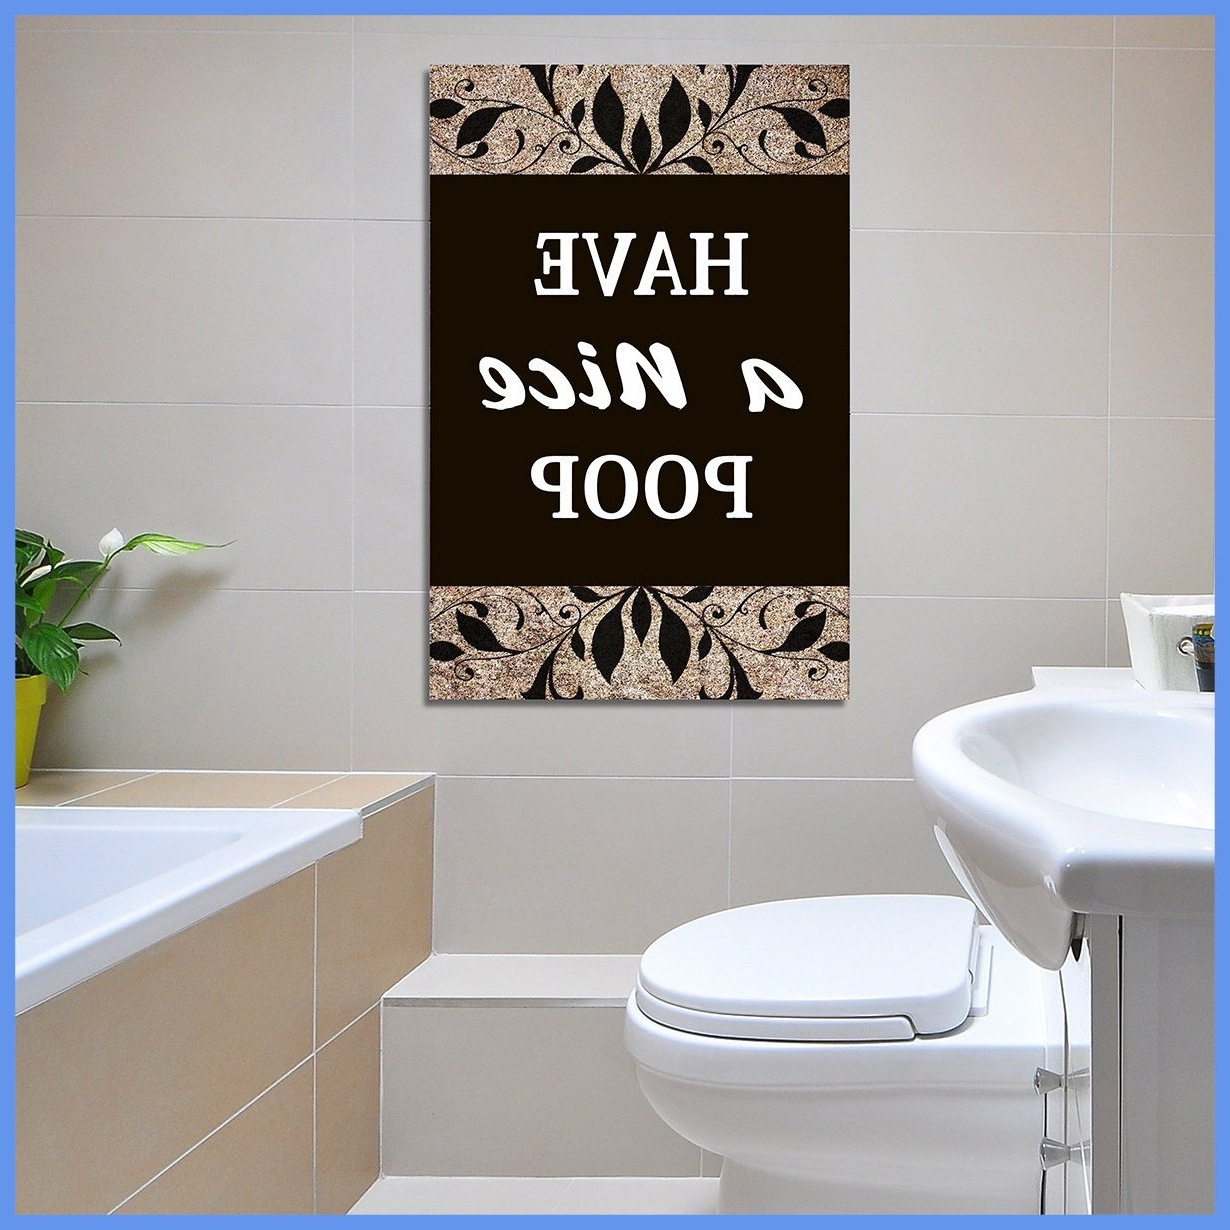 Well Known Unusual Wall Art Regarding Fascinating Unusual Idea Wall Art Bathroom Have A Nice Poop Humor (View 15 of 20)